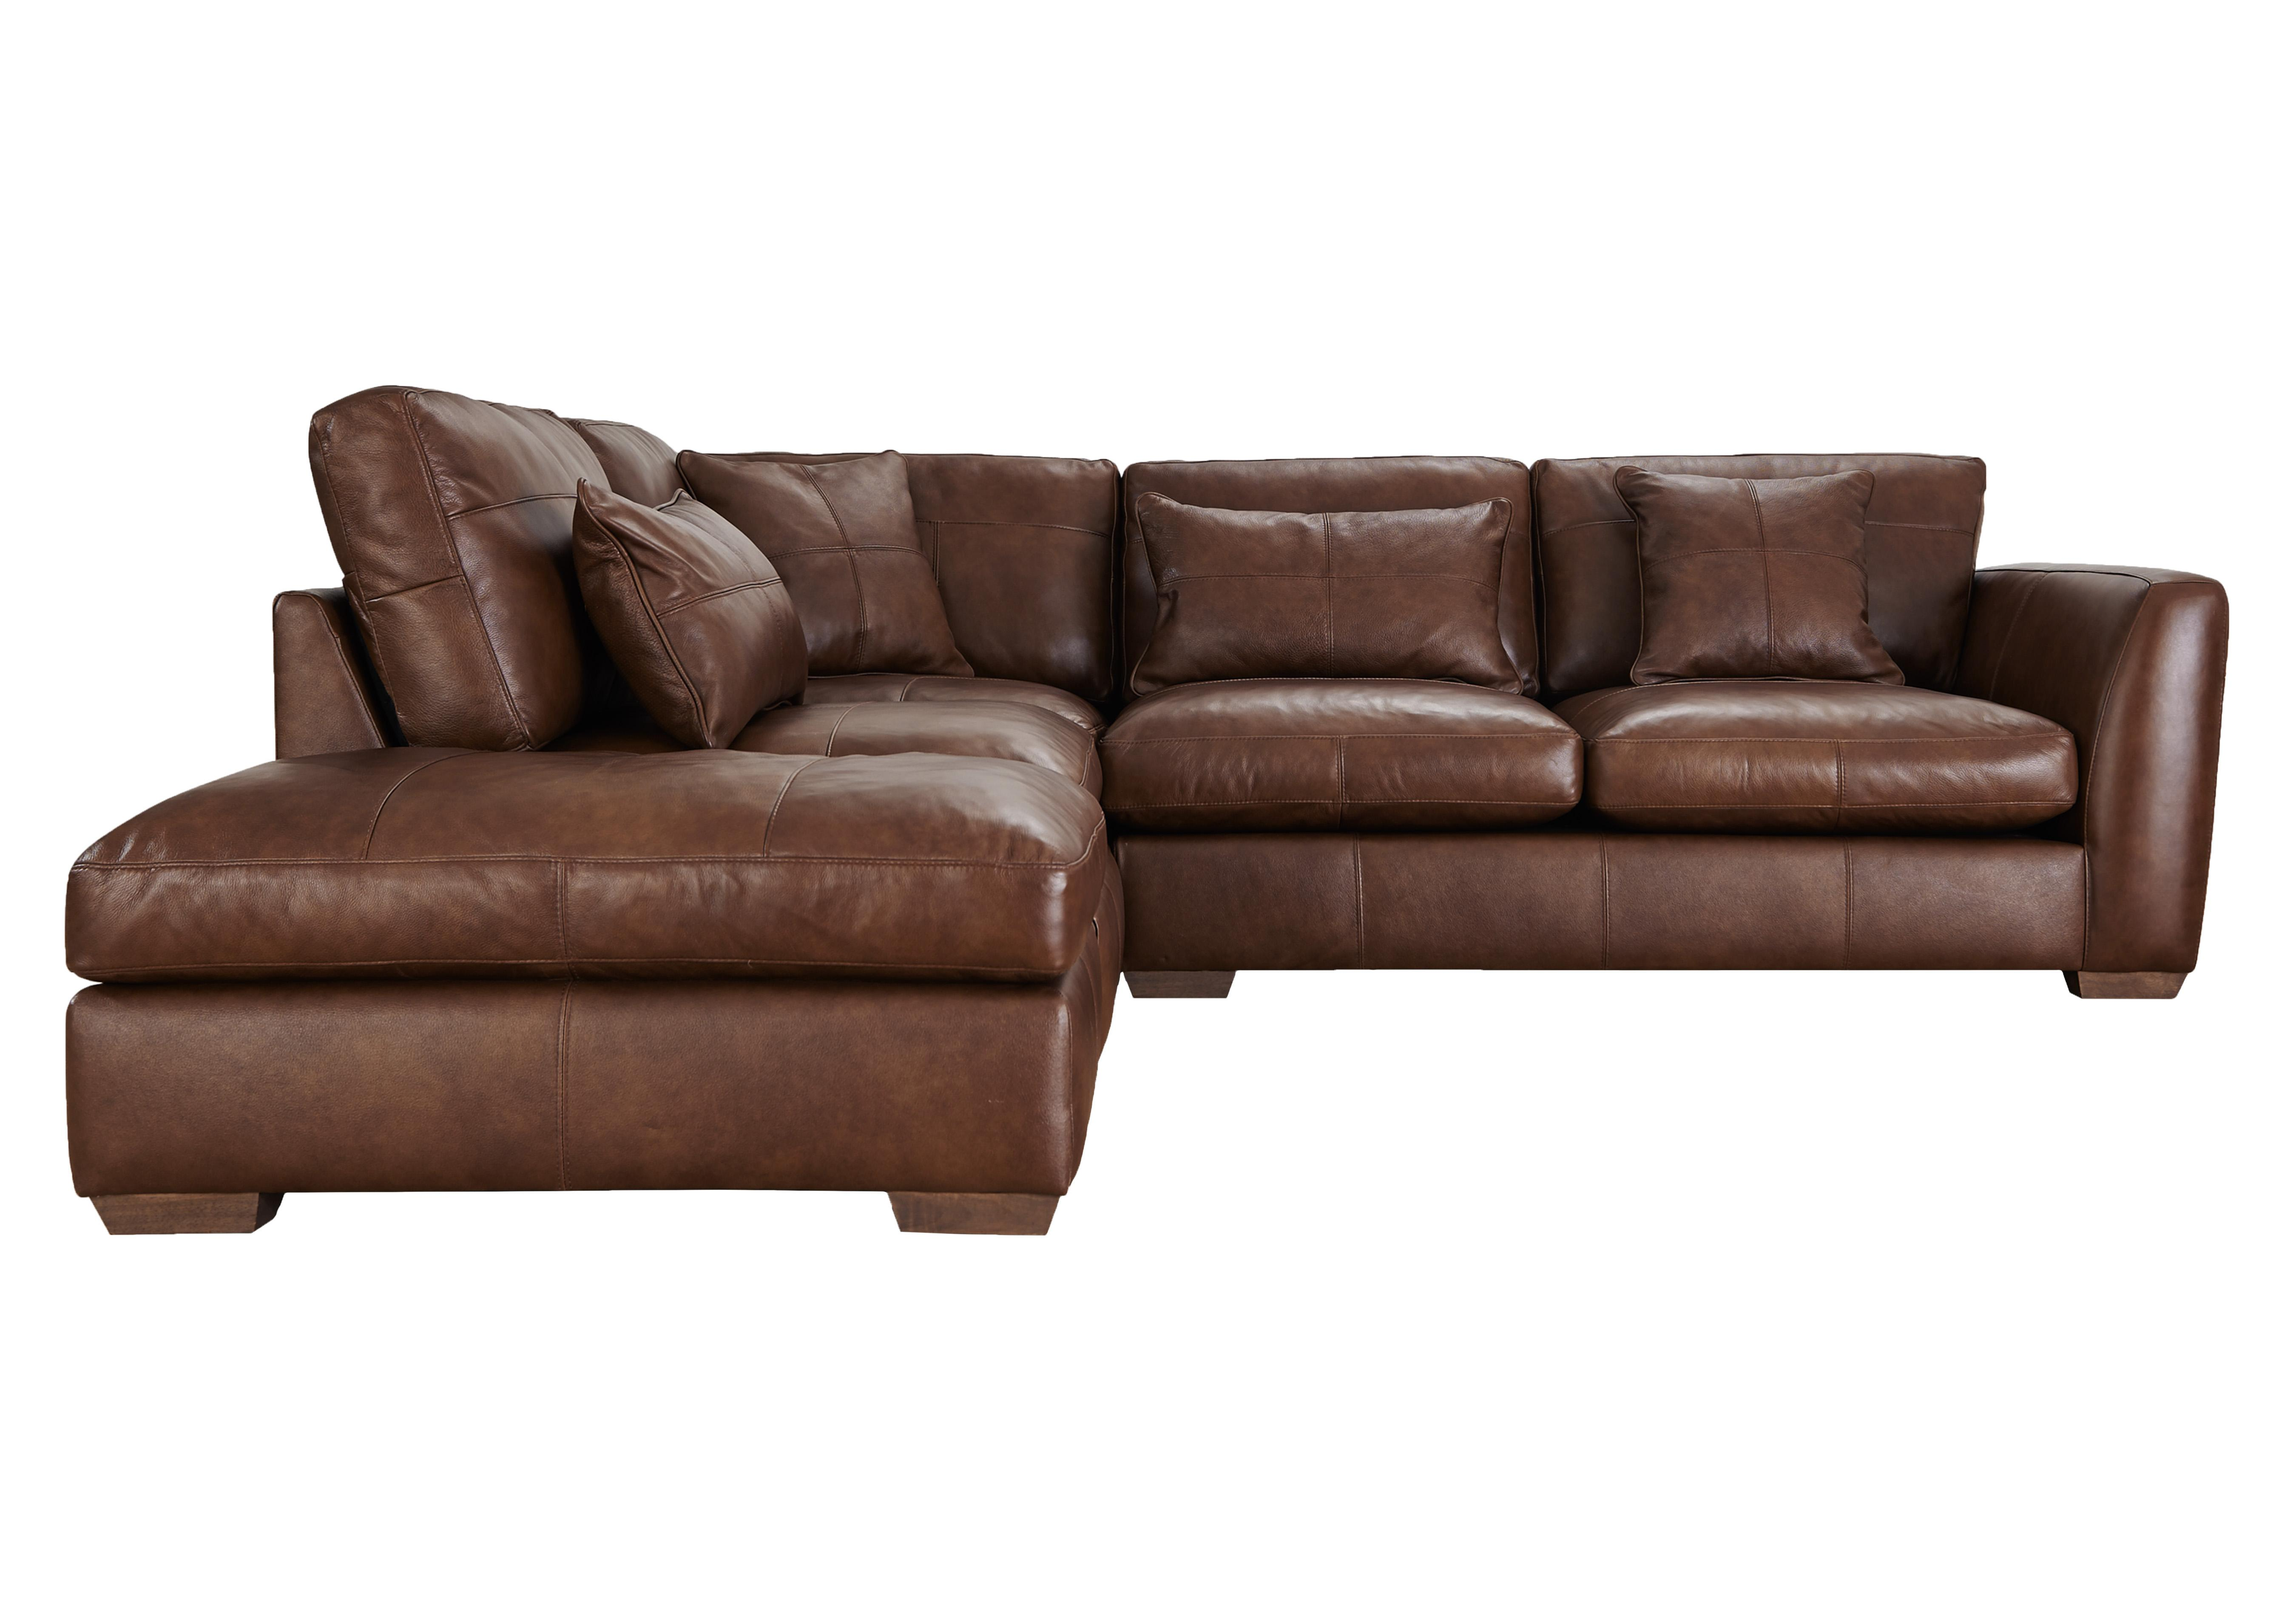 savannah leather corner sofa - furniture village NSBSTXF